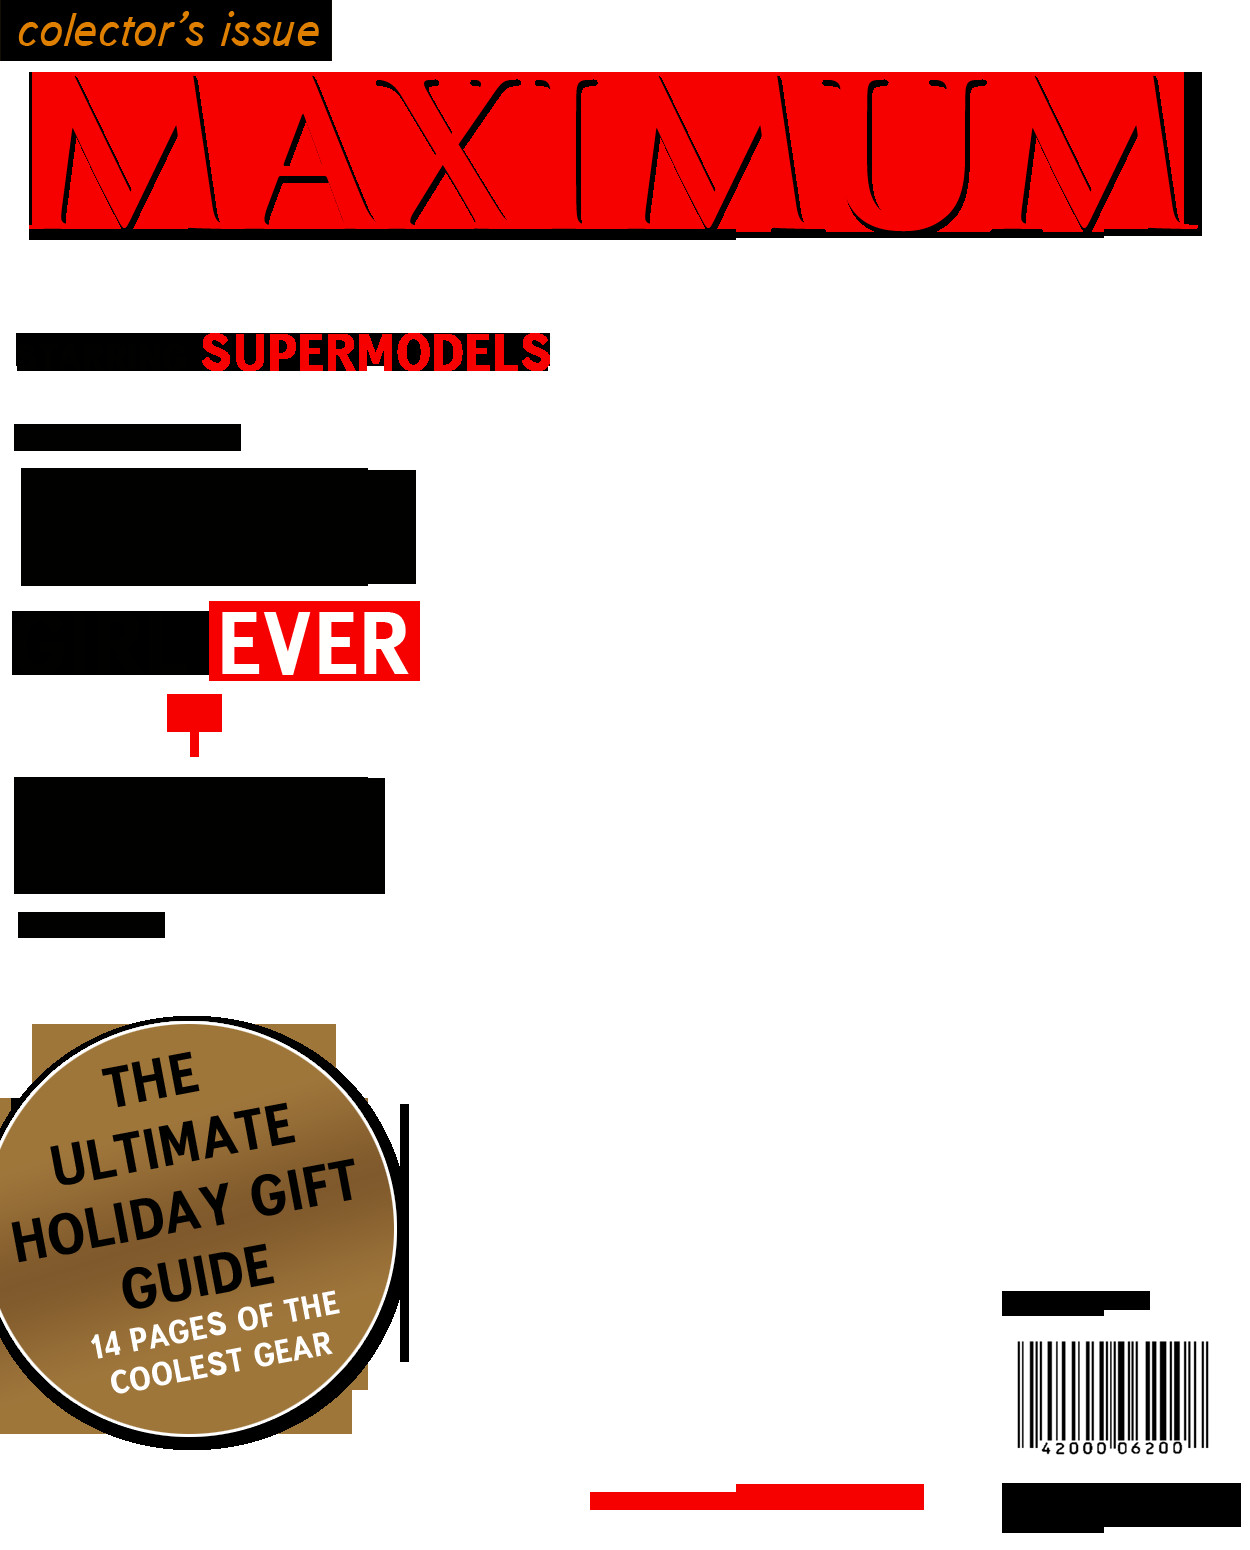 Free Personalized Magazine Covers Templates Inmagazines Fake Magazine Cover Generator